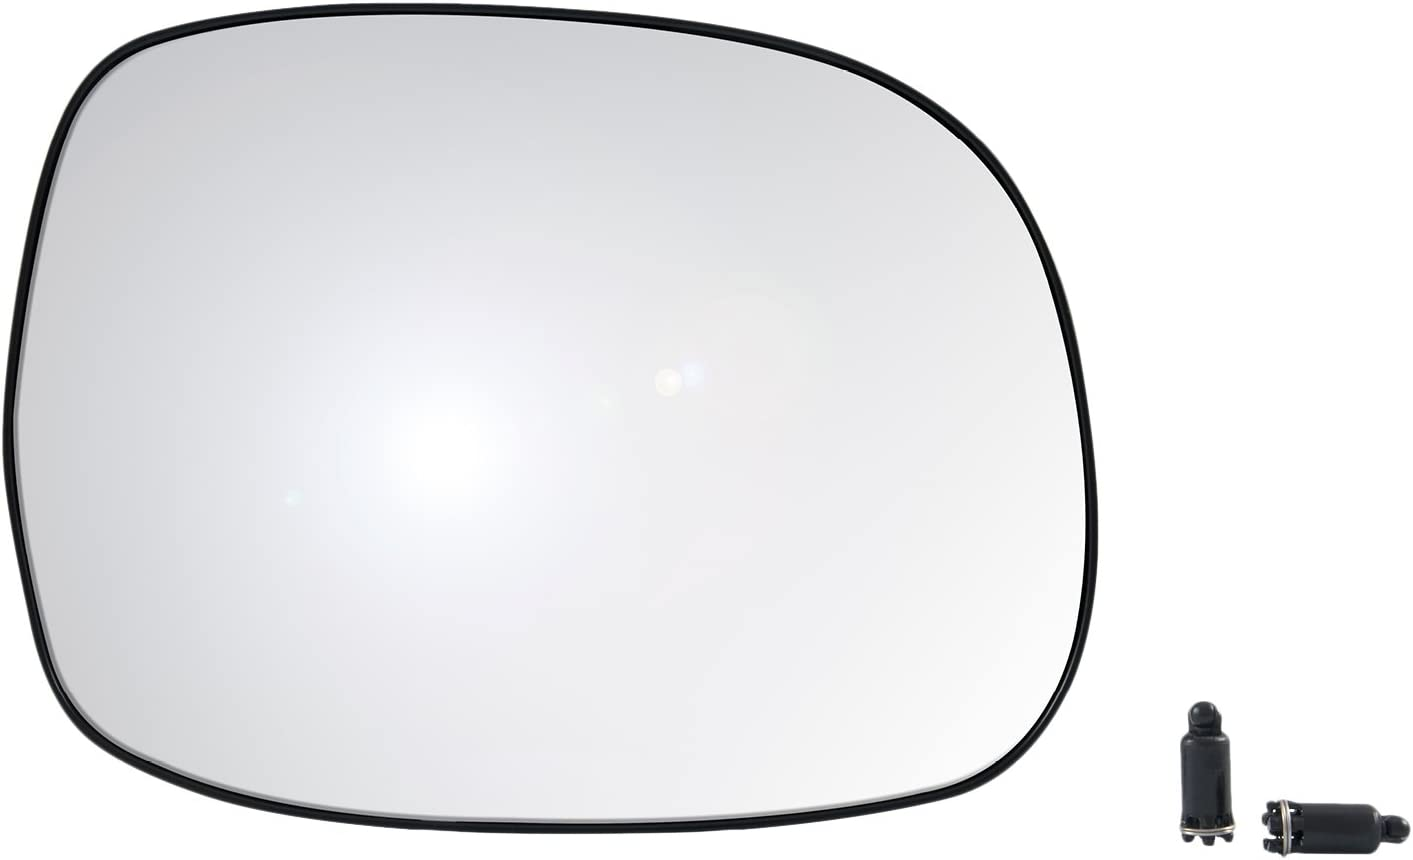 6 1//4 x 8 3//16 x 8 3//4 Passenger Side Heated Mirror Glass w//backing plate OE Magna Brand Toyota Sequoia SR5 Model Tundra